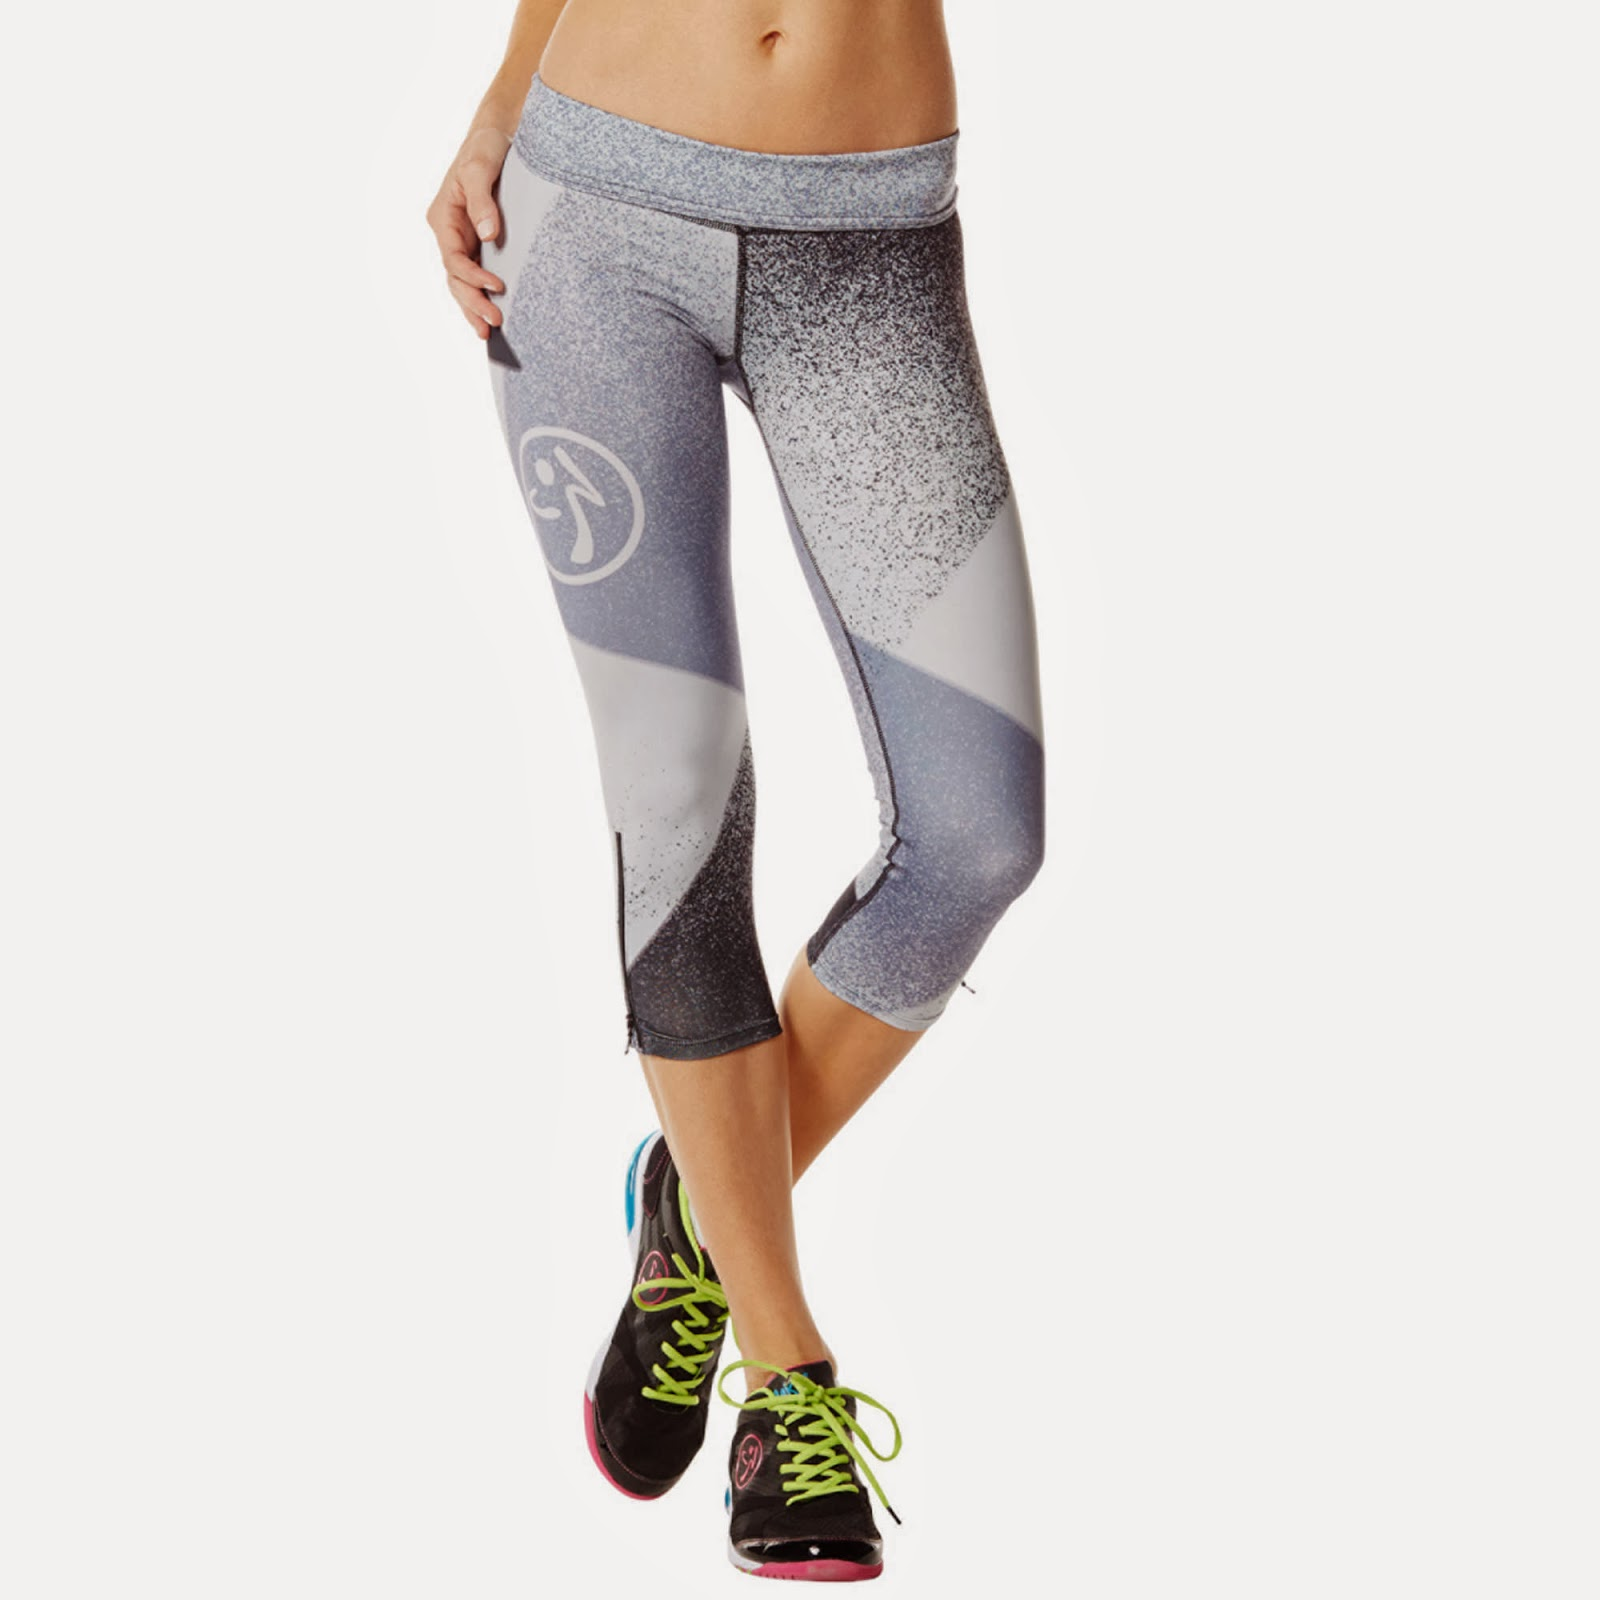 http://www.zumba.com/en-US/store/US/product/so-shaded-capri-leggings?color=Smoke